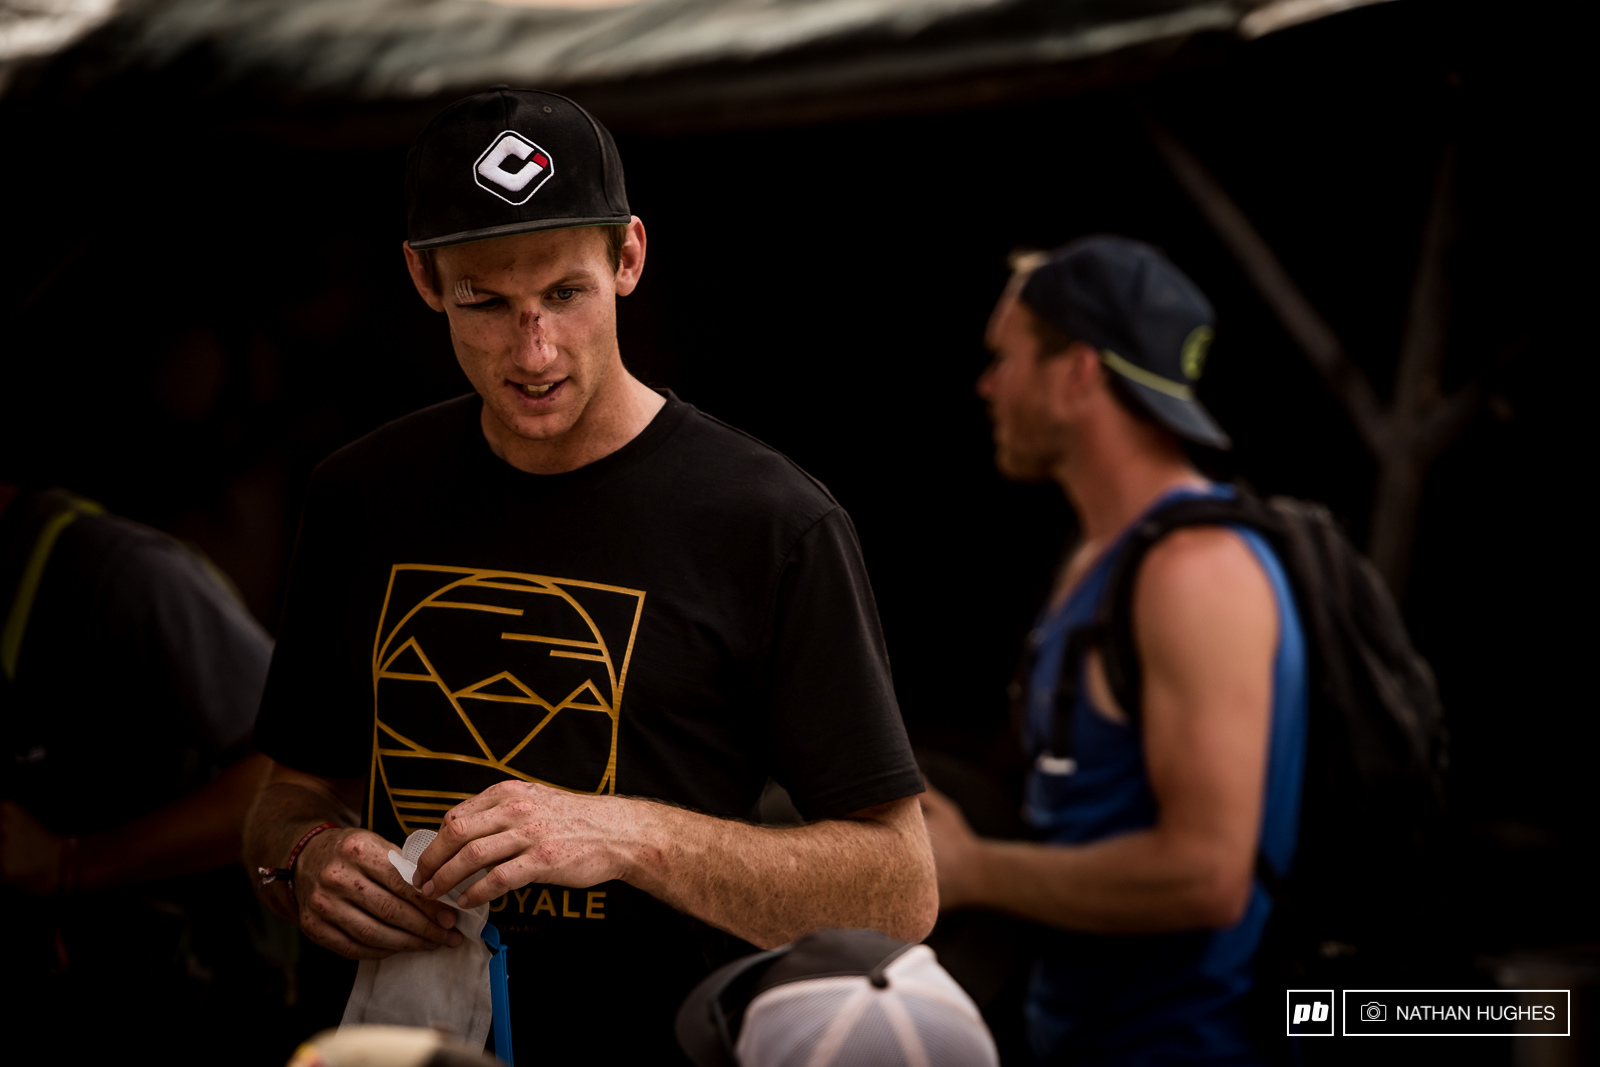 This year Kiwi Conor McFarlane came to Rampage to rip out throats but yesterday s guinea-pigging took it s toll. His line has some of the most appalling gaps that even the likes of Lacondeguy said they d refuse to ride.